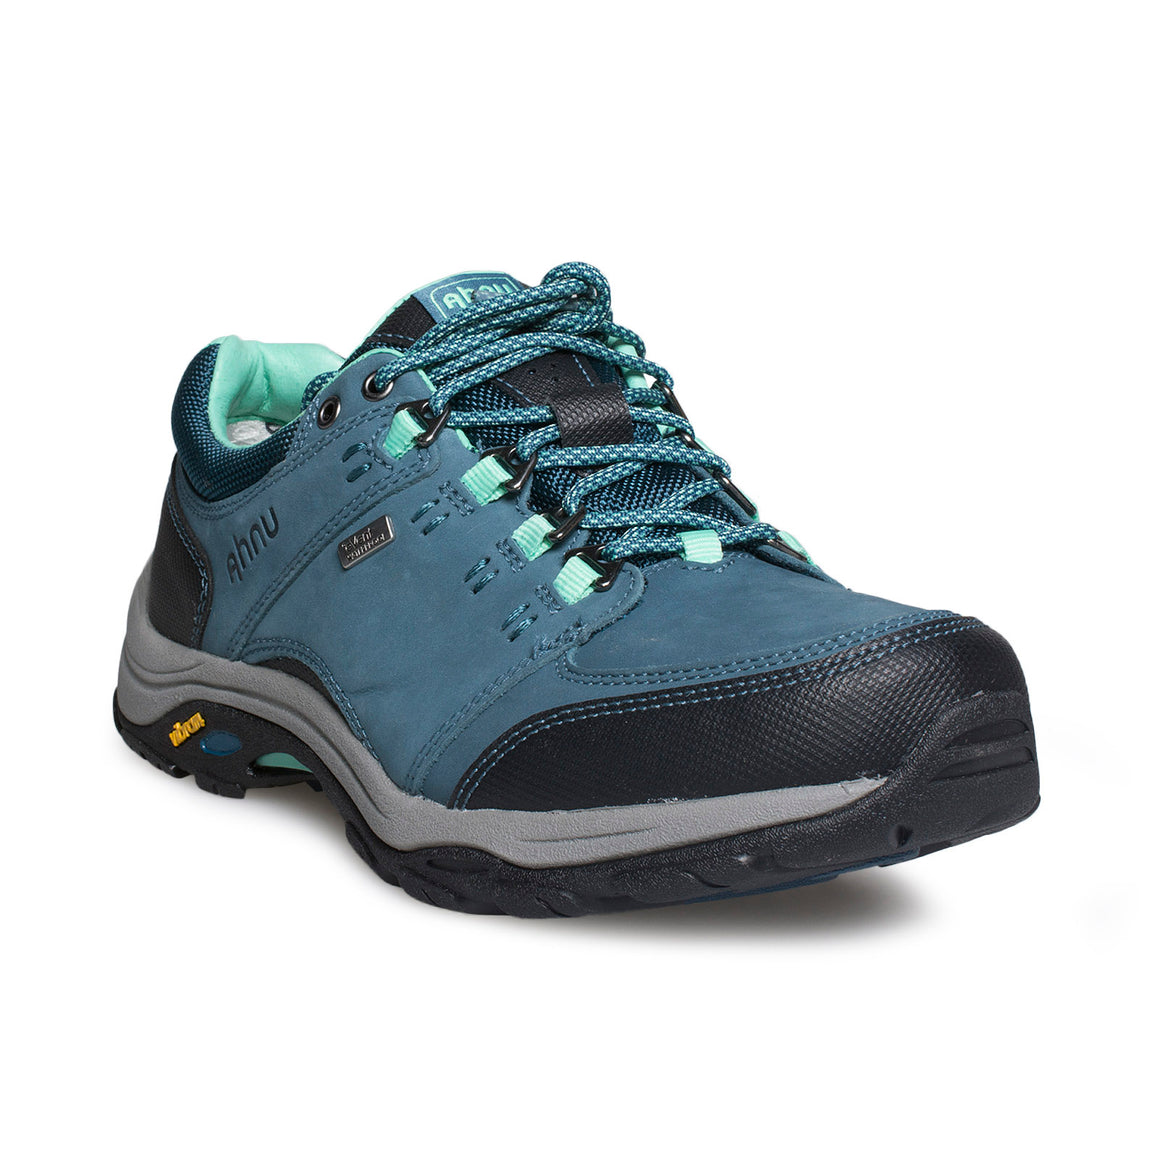 Ahnu Montara III Event Legion Blue Shoes - Women's